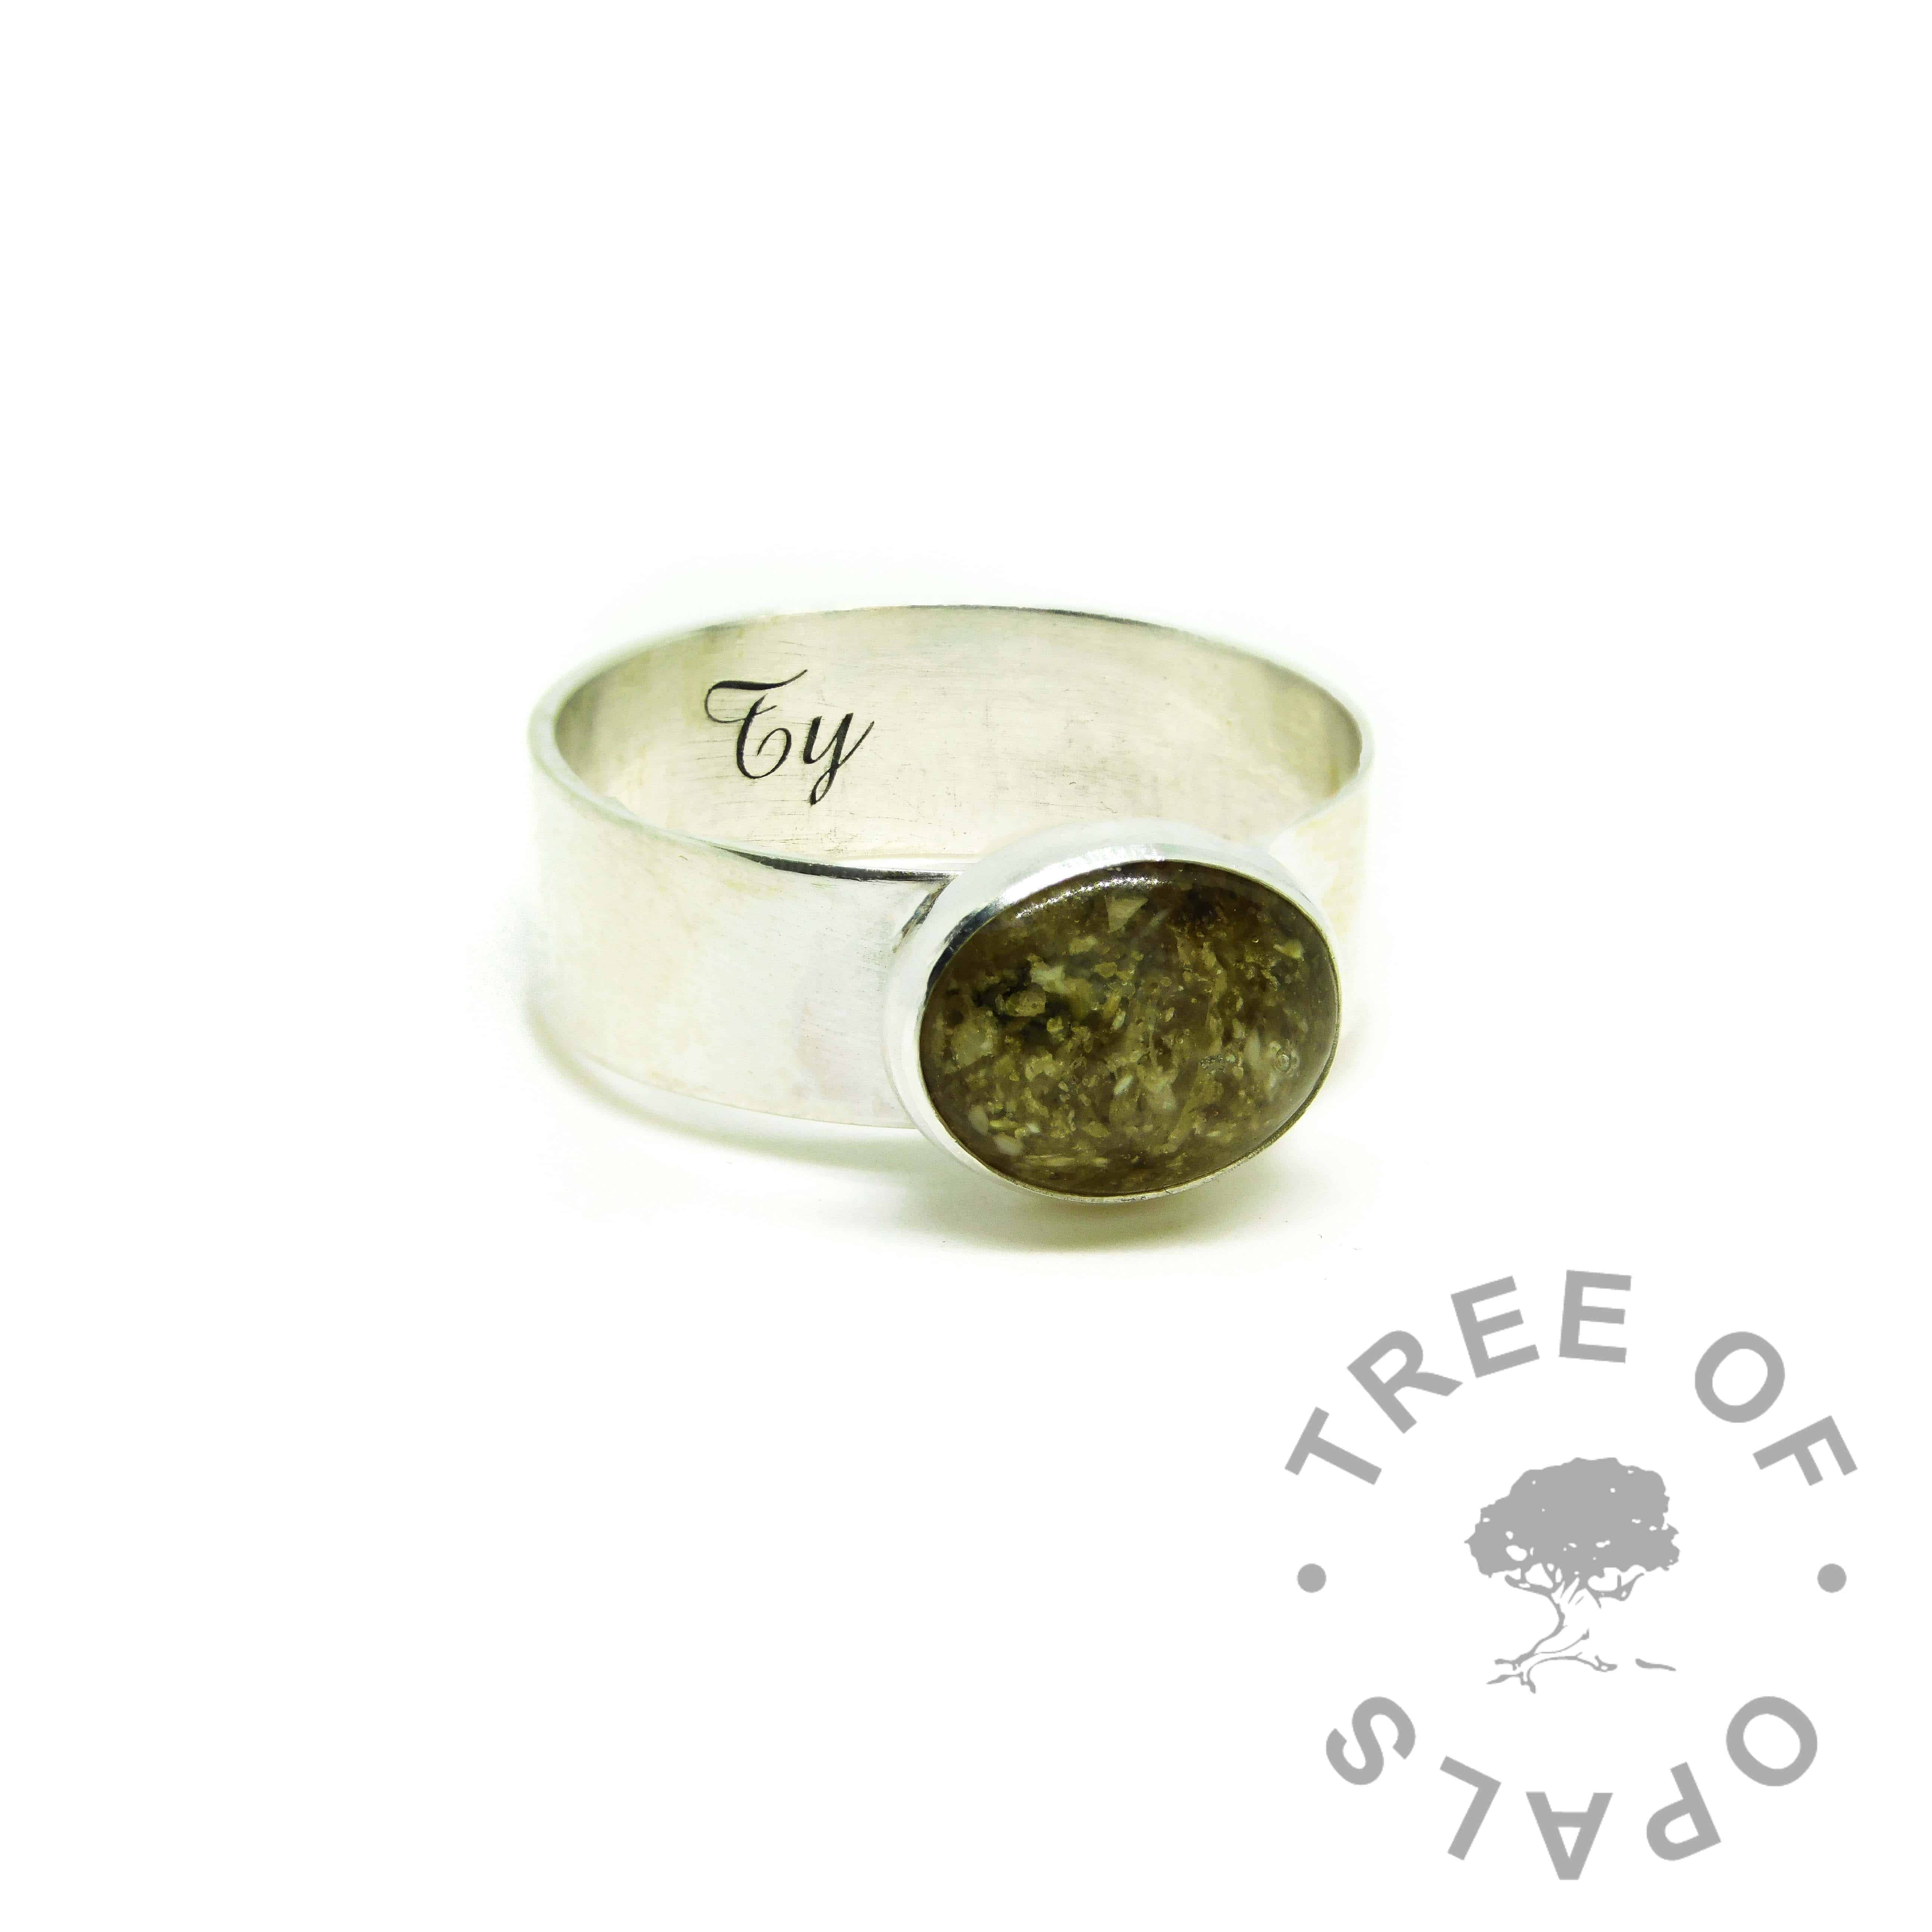 classic ashes ring, cremation ashes ring on 6mm shiny band. No resin sparkle mix, naturally yellow/green ashes